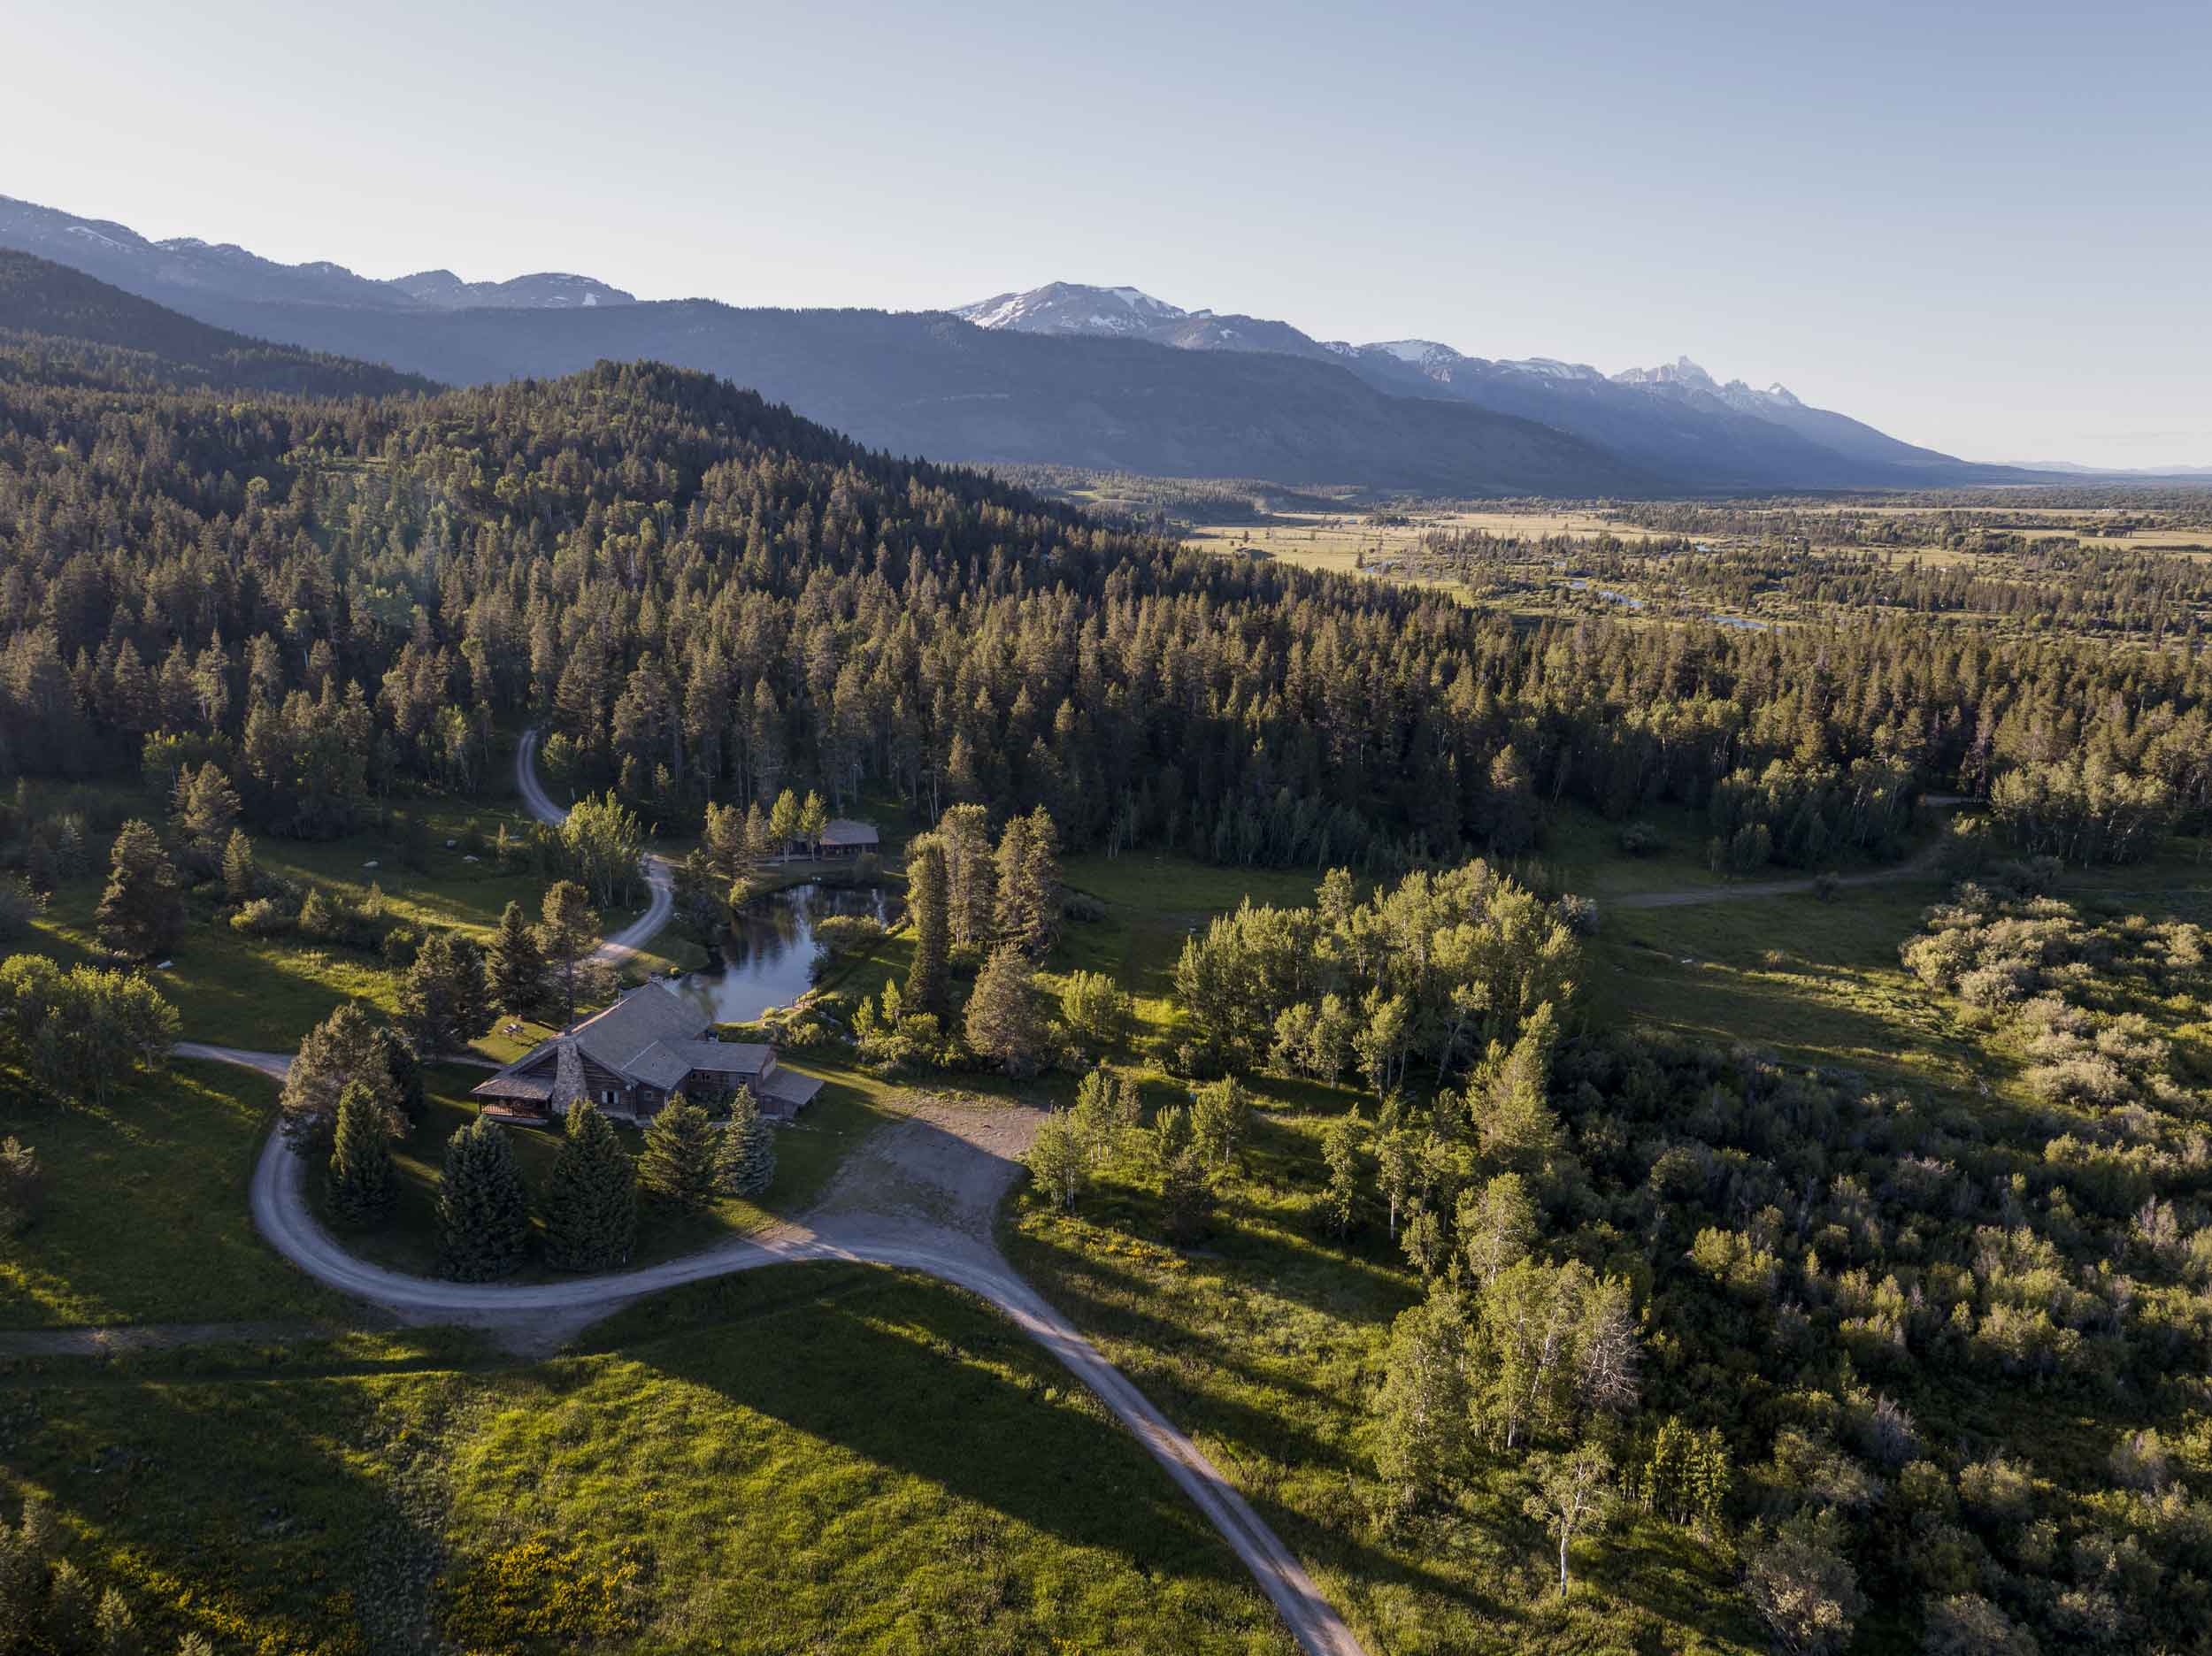 This spectacular 158-acre estate on the doorstep of Yellowstone and Grand Teton national parks is surrounded by millions of acres of virgin forest.